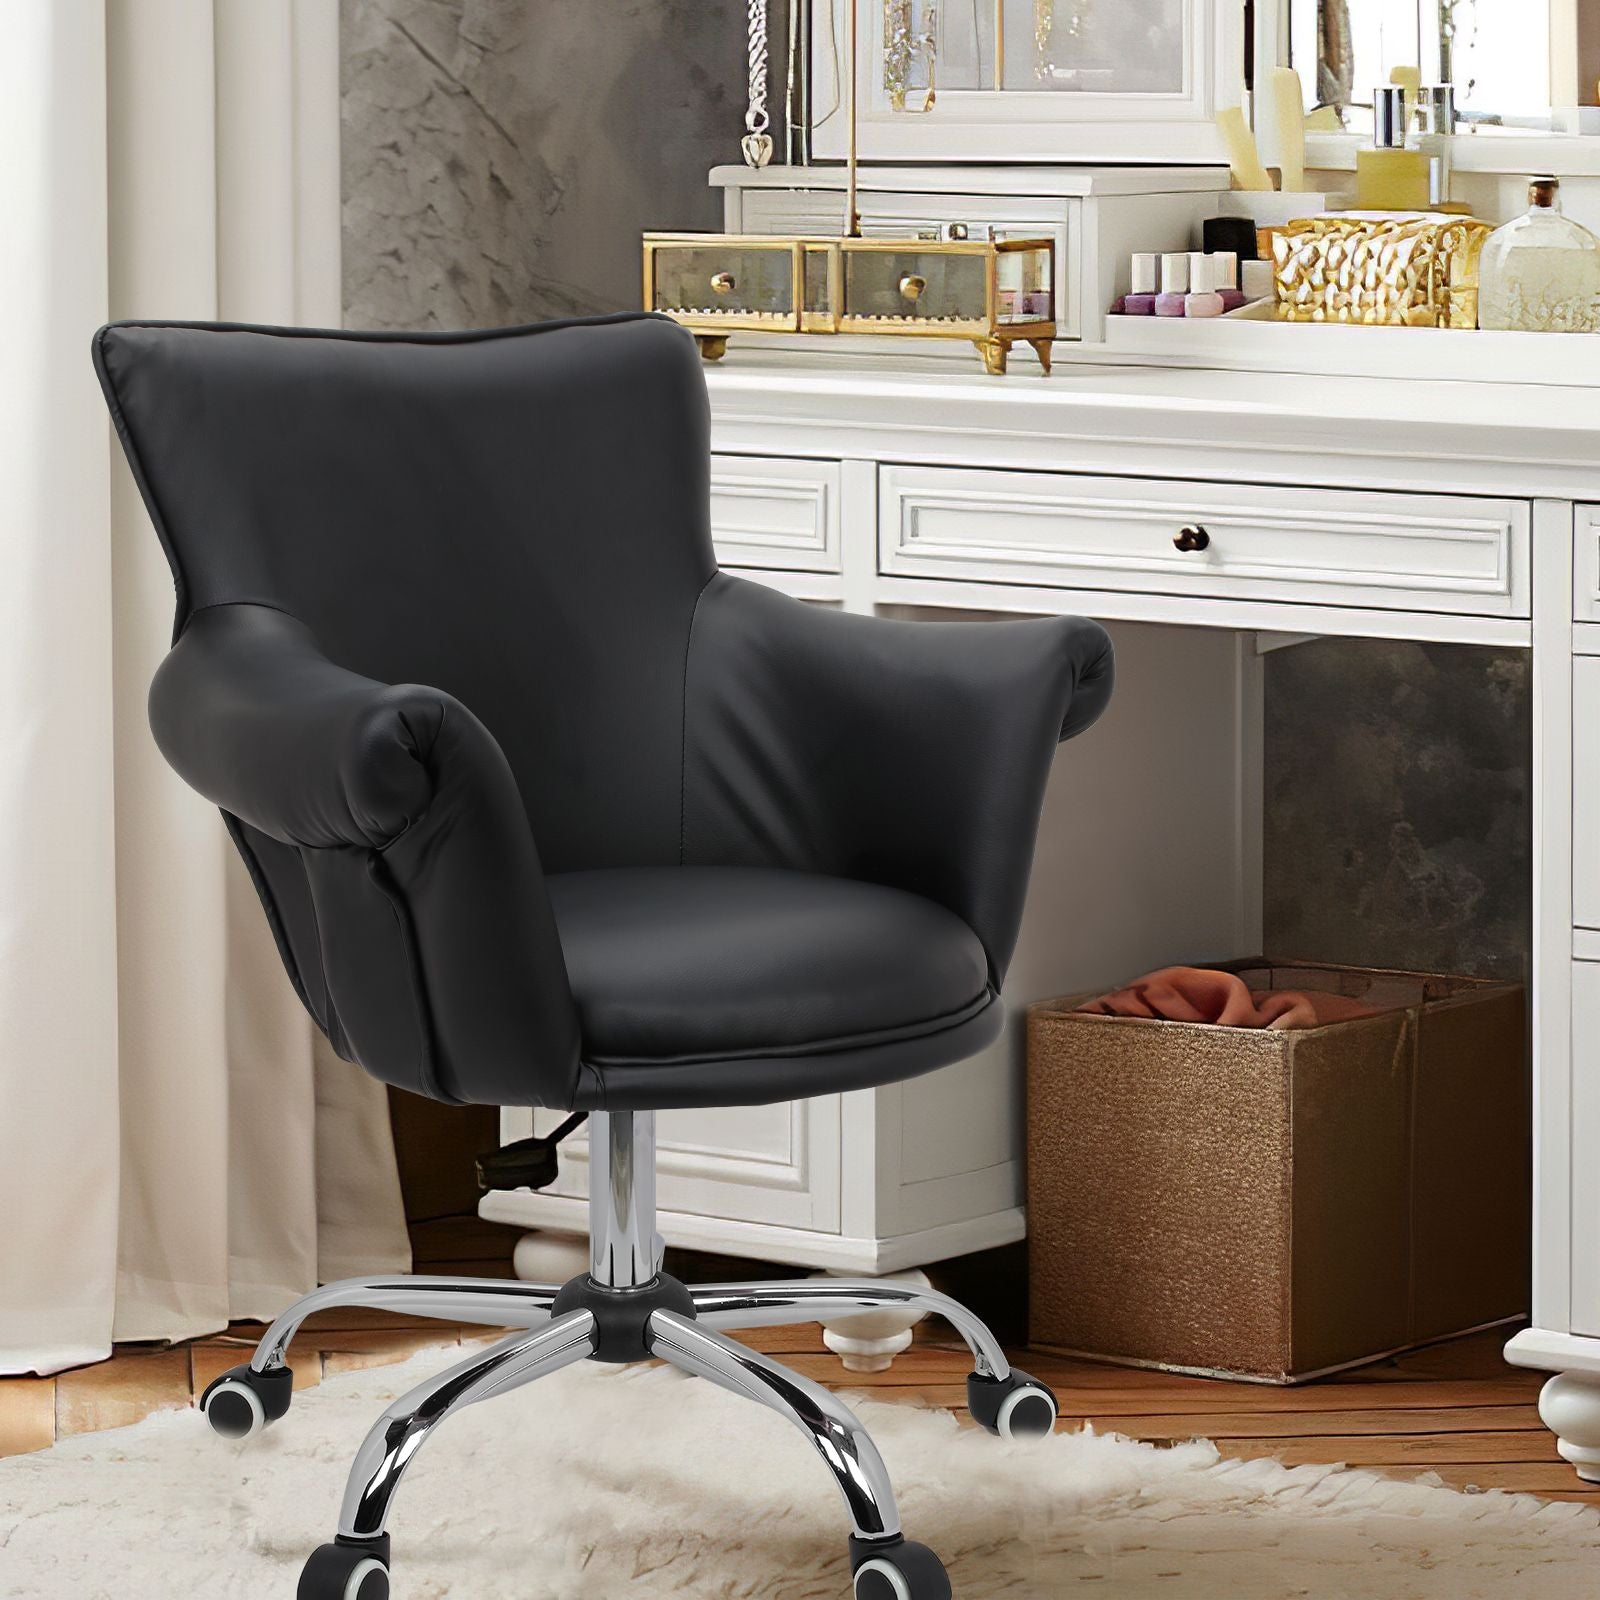 Dark Slate Gray Modern Mid Back Microfiber Home Office Chair Computer Desk Chair Swivel Beauty Nail Salon Spa Vanity Seat